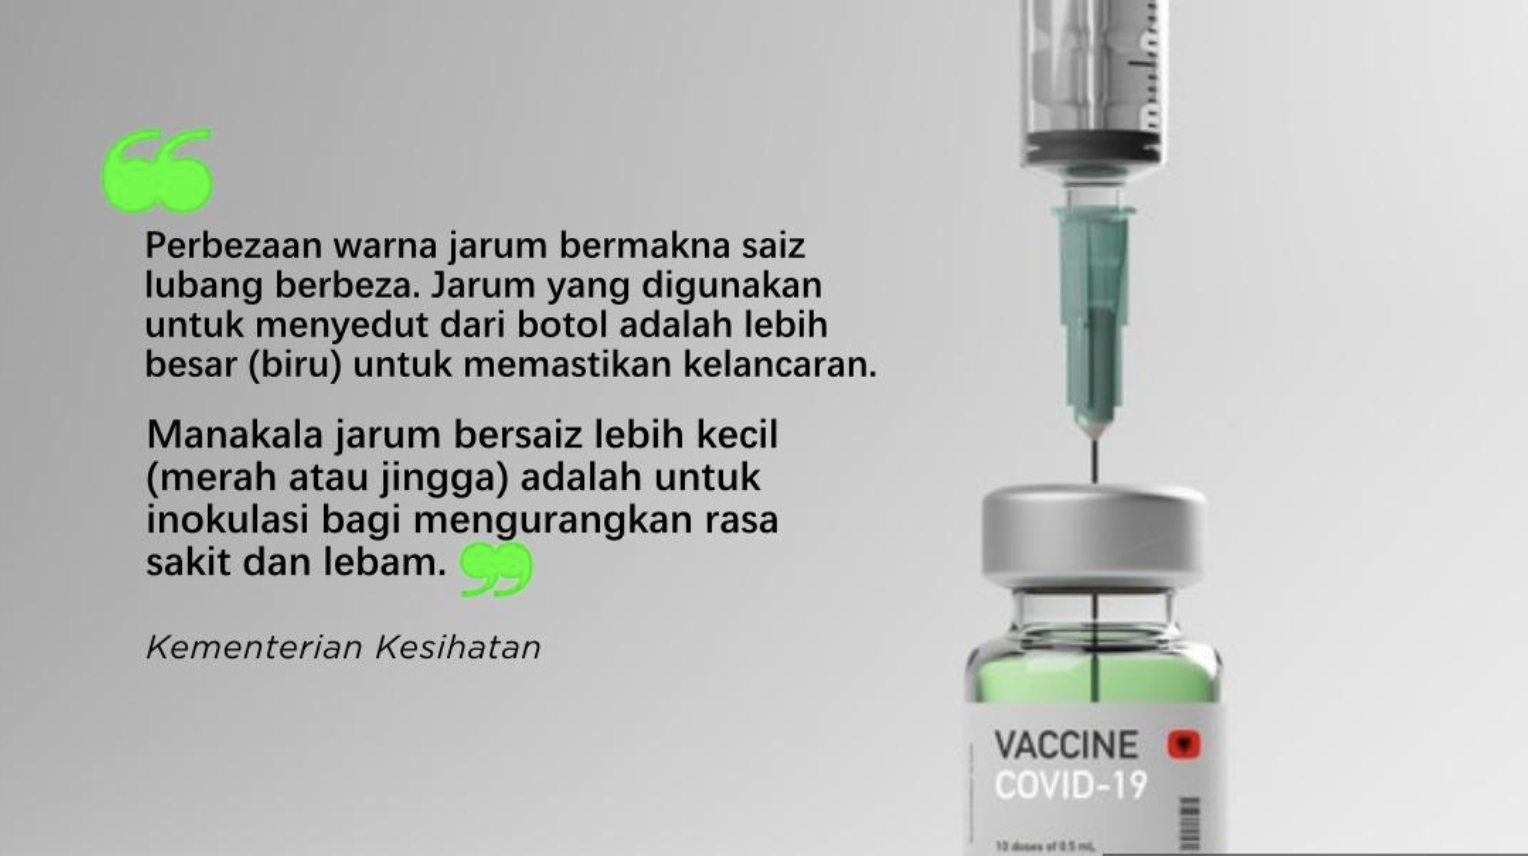 Different needles serve different needs, even in vaccination - MOH